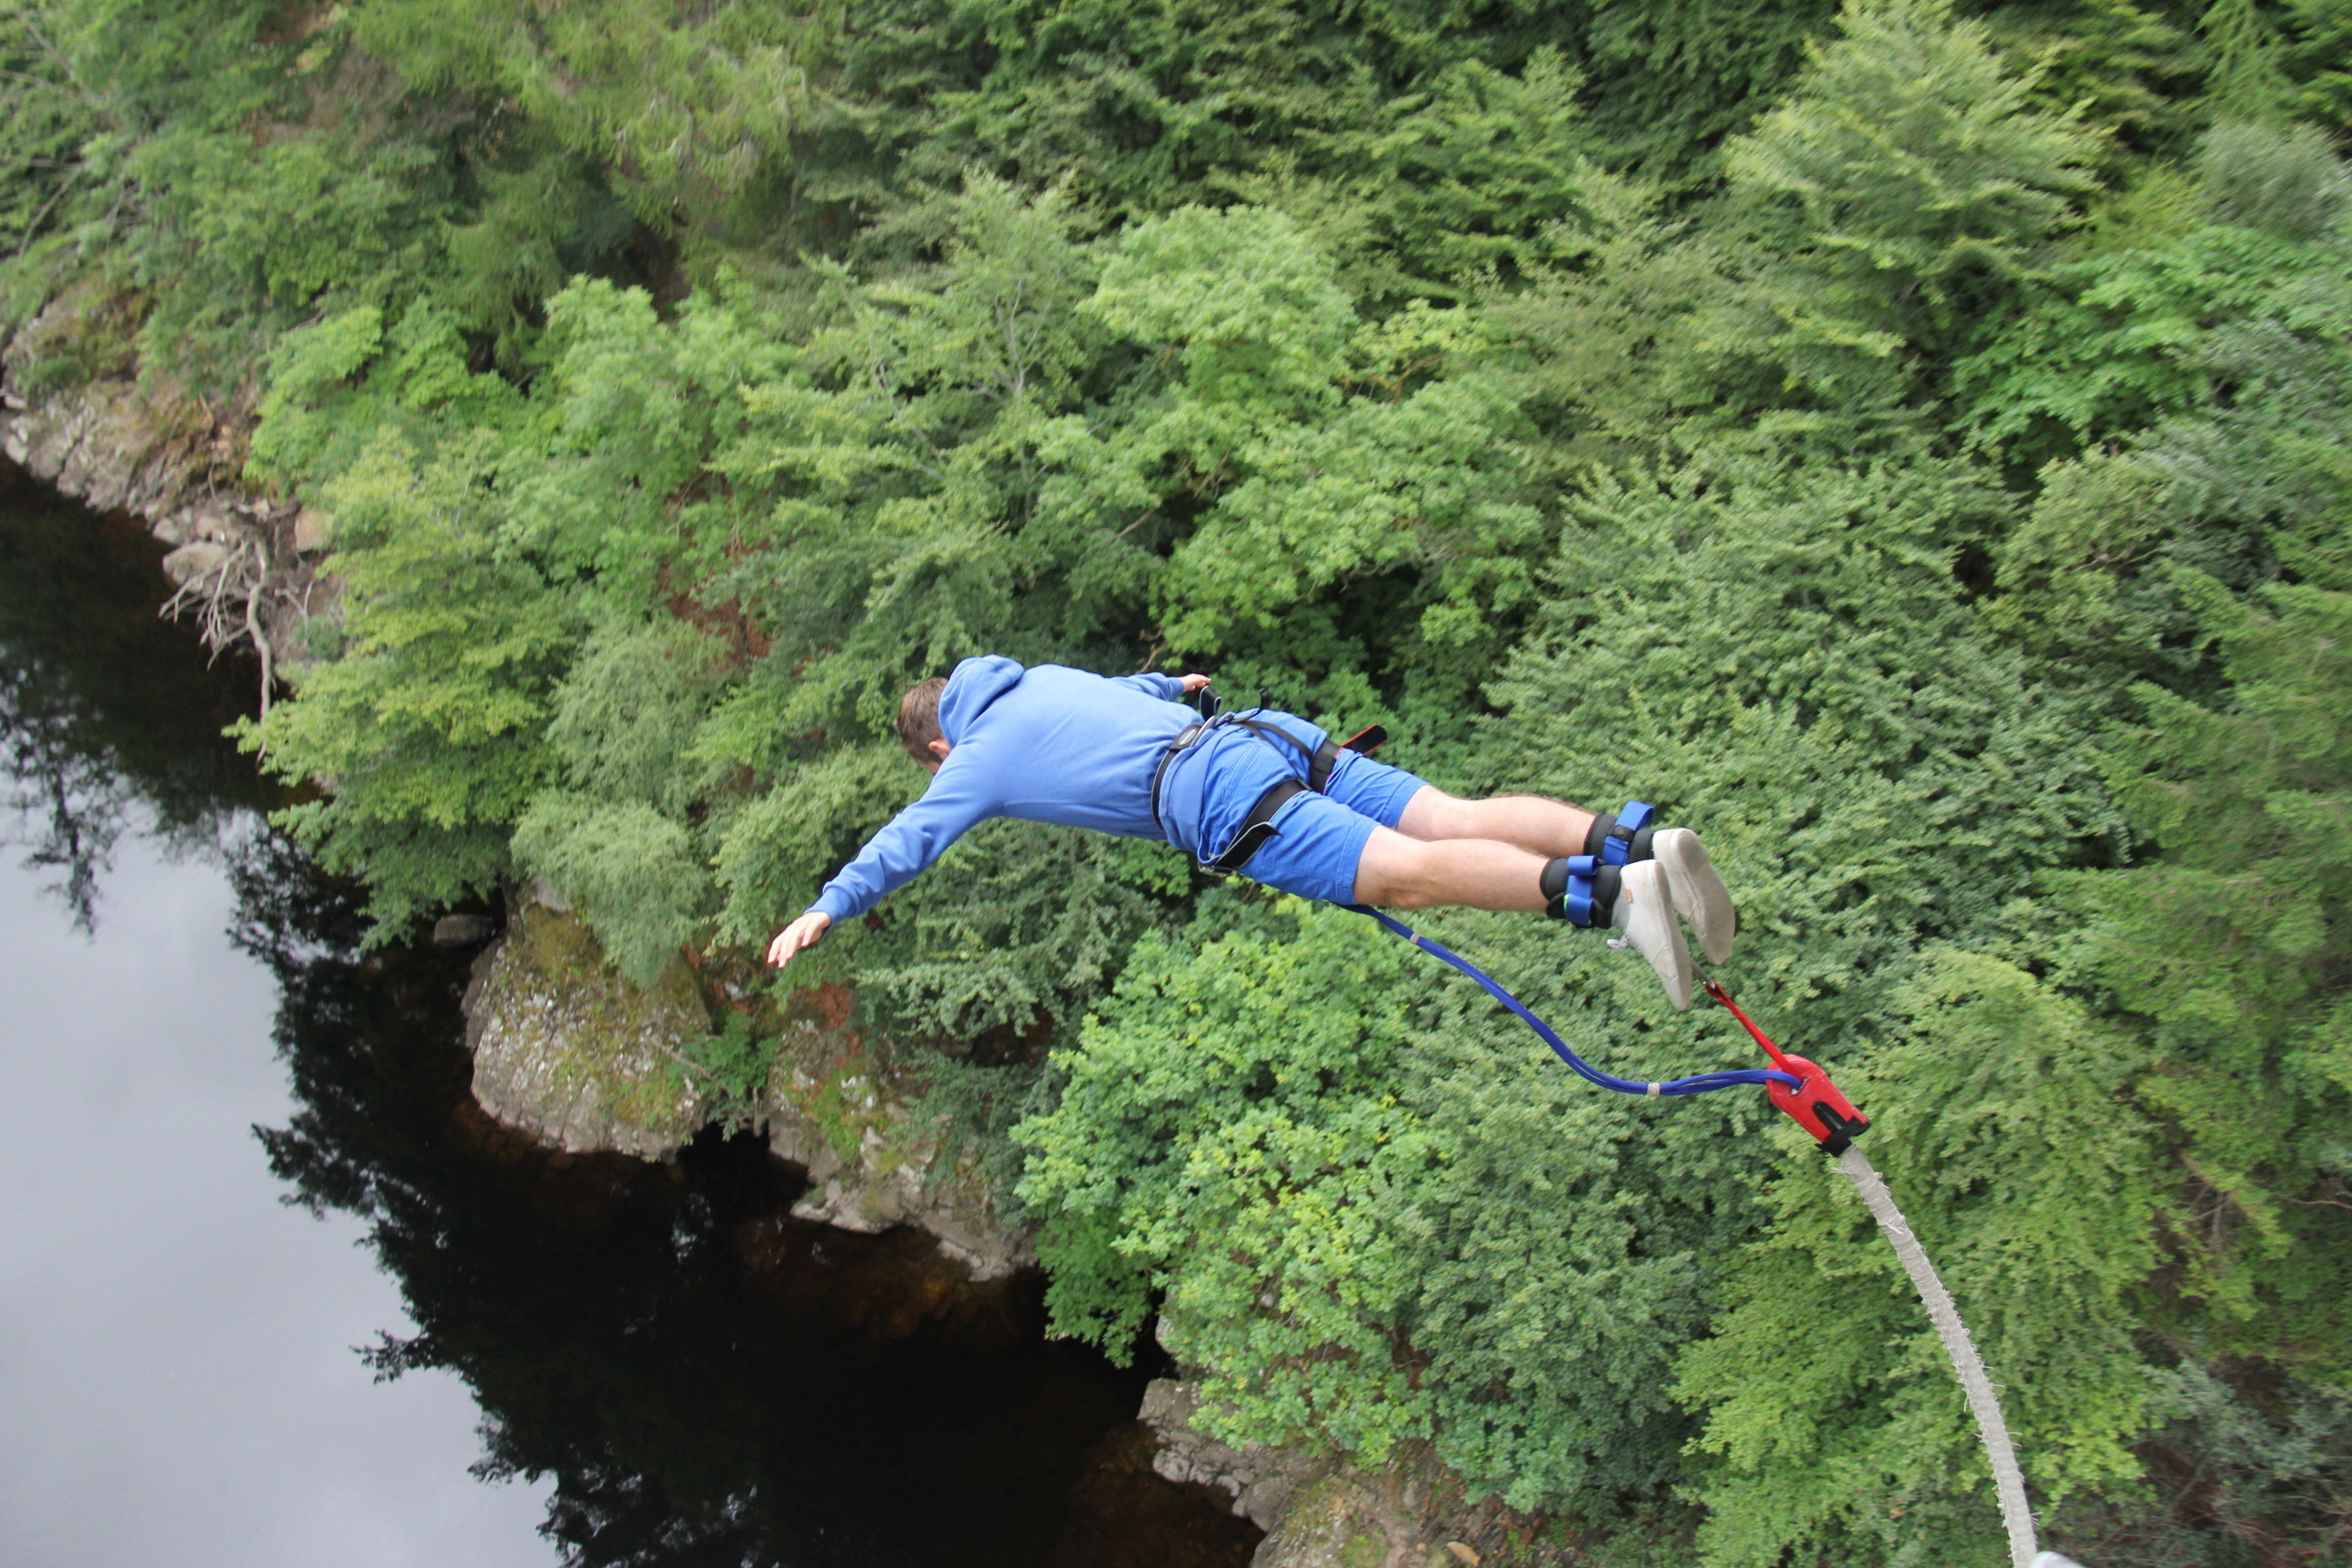 100 Teen Money Making Ideas for Young Entrepreneurs Highland fling bungee photos